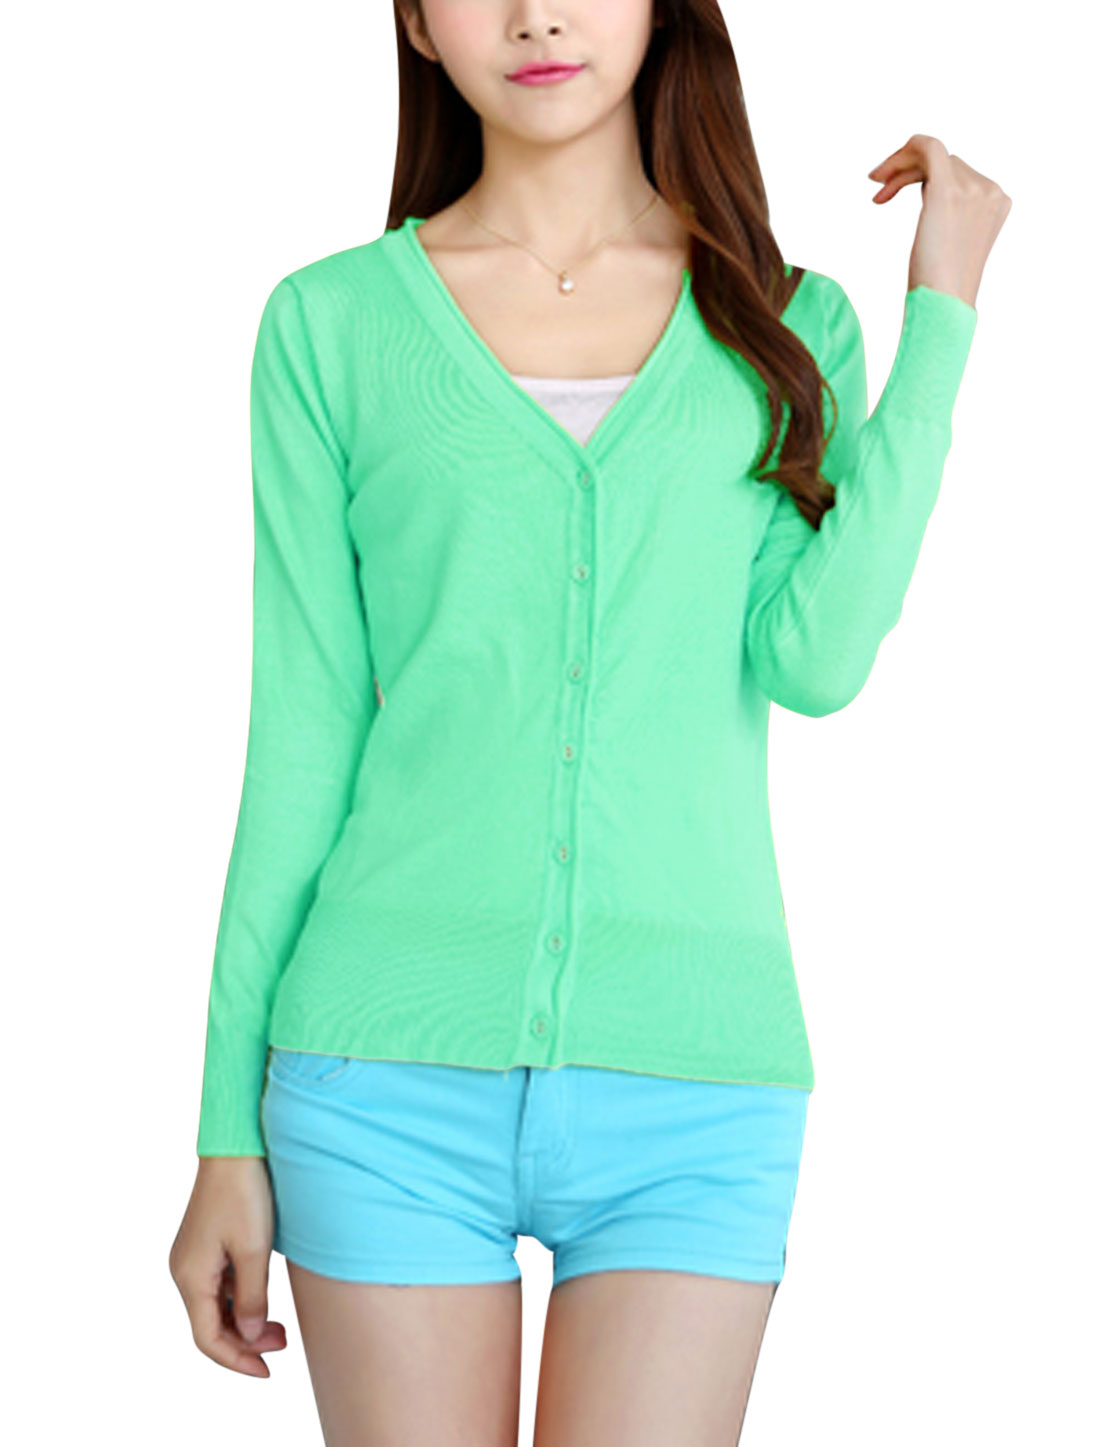 Ladies Long Sleeves Single Breasted Stretchy Knit Cardigan Mint S